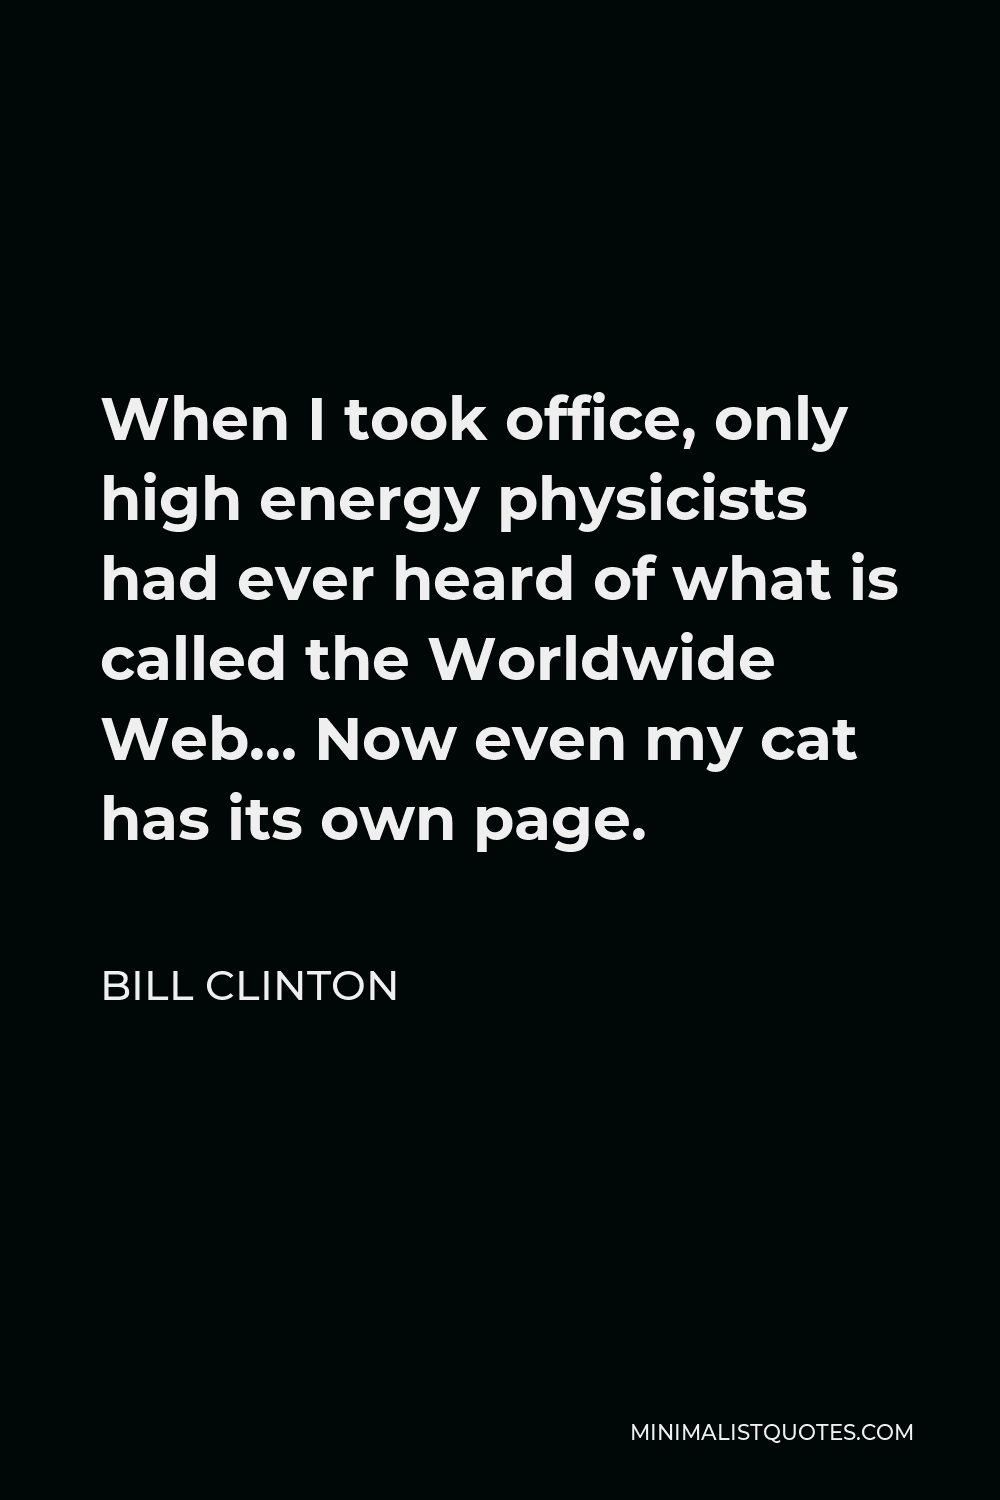 Bill Clinton Quote - When I took office, only high energy physicists had ever heard of what is called the Worldwide Web… Now even my cat has its own page.